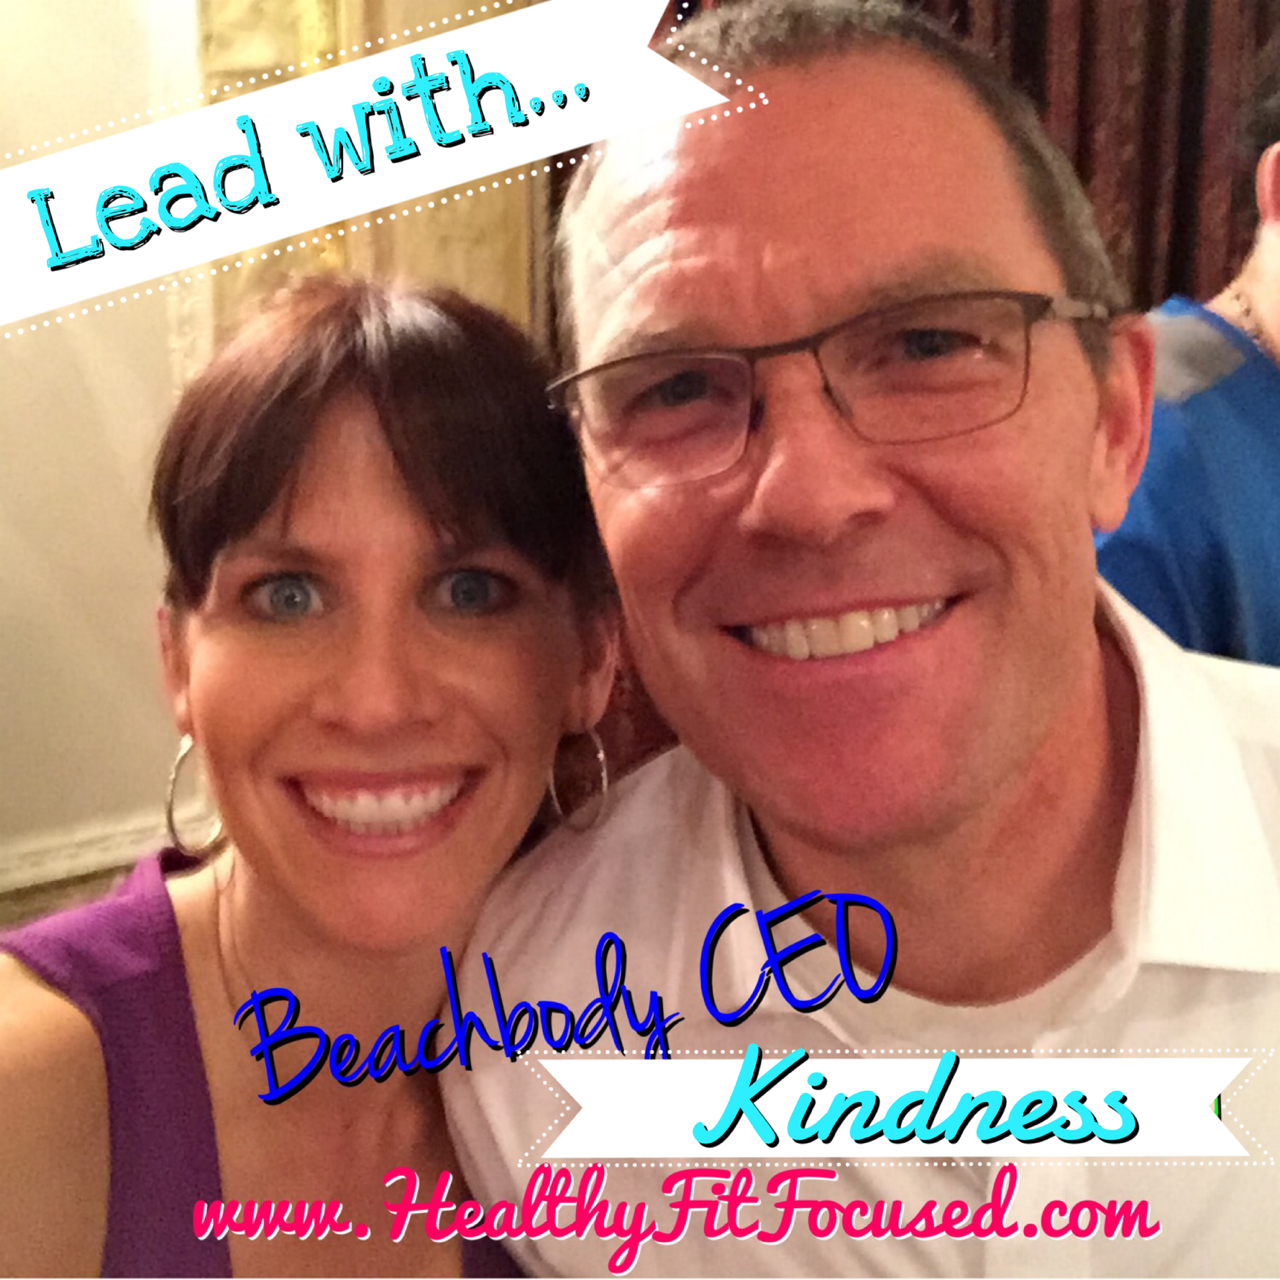 Leading with Kindness, As a Beachbody Coach you have the opportunity to change someone's life!  Carl Daikeler Beachbody CEO, www.HealthyFitFocused.com